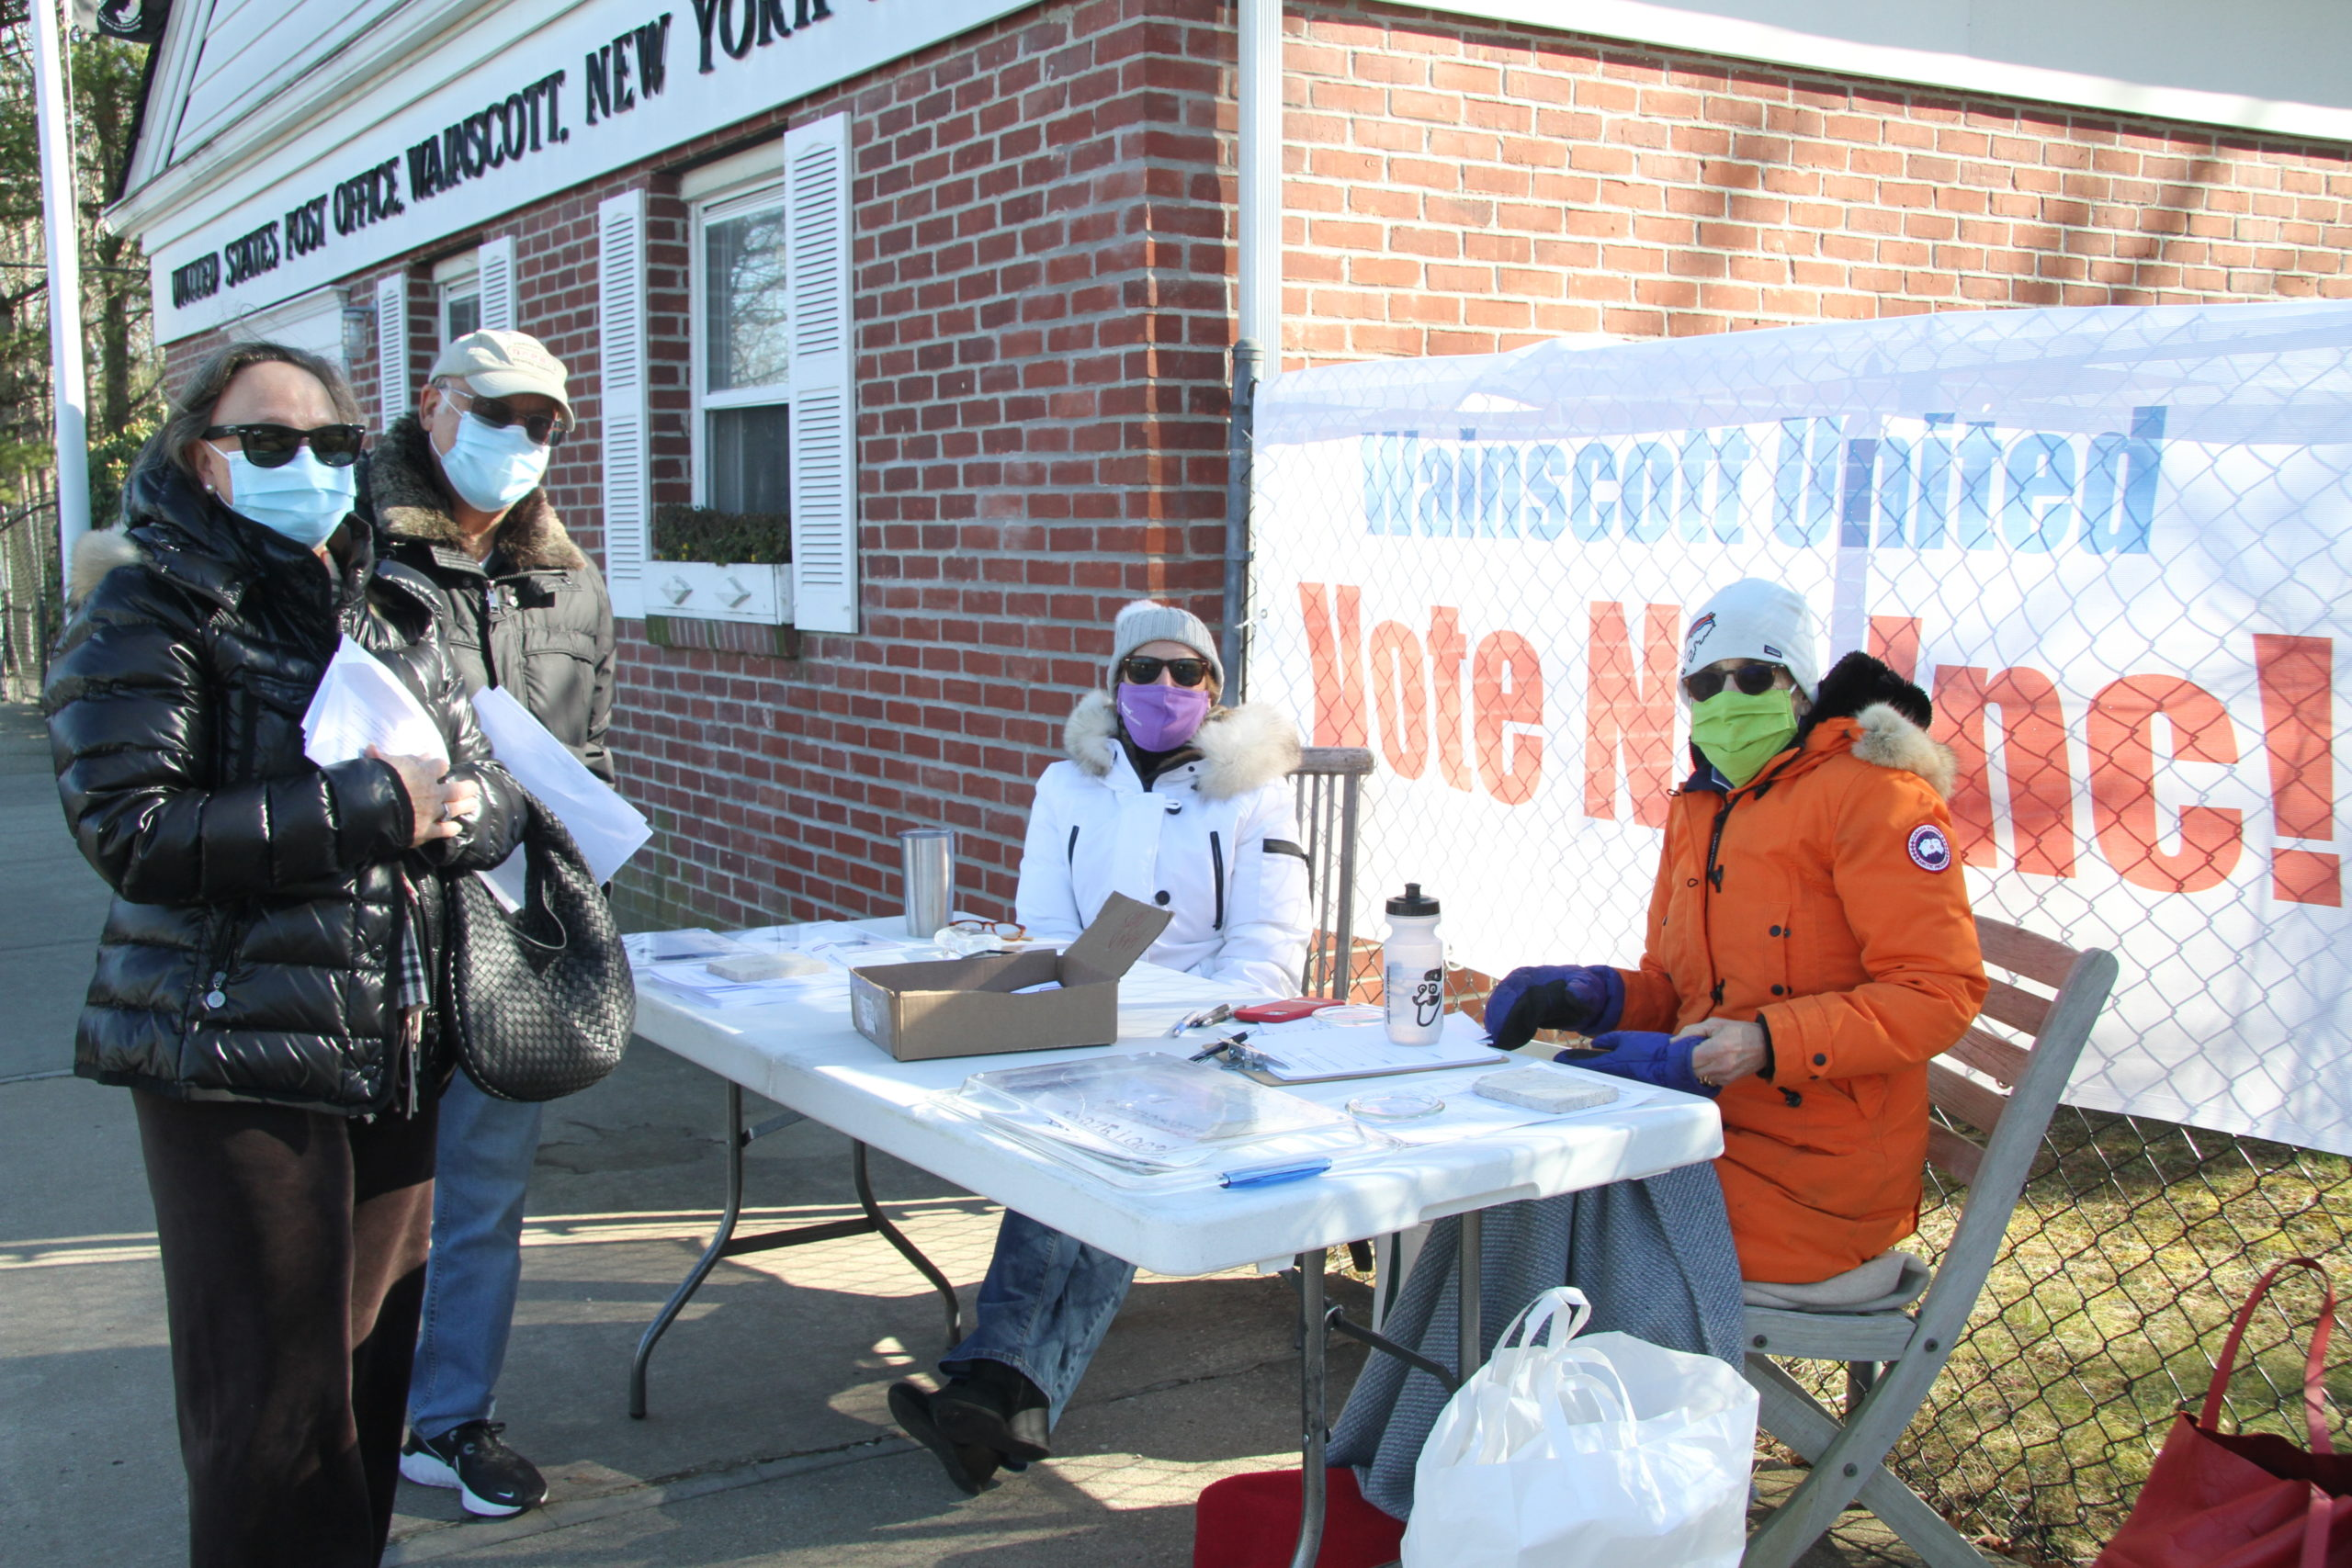 A group calling itself Wainscott United has been lobbying residents of the hamlet to oppose the incorporation proposal. Doreen Niggles and Annie Hall set up an information booth outside the Wainscott Post Office recently.